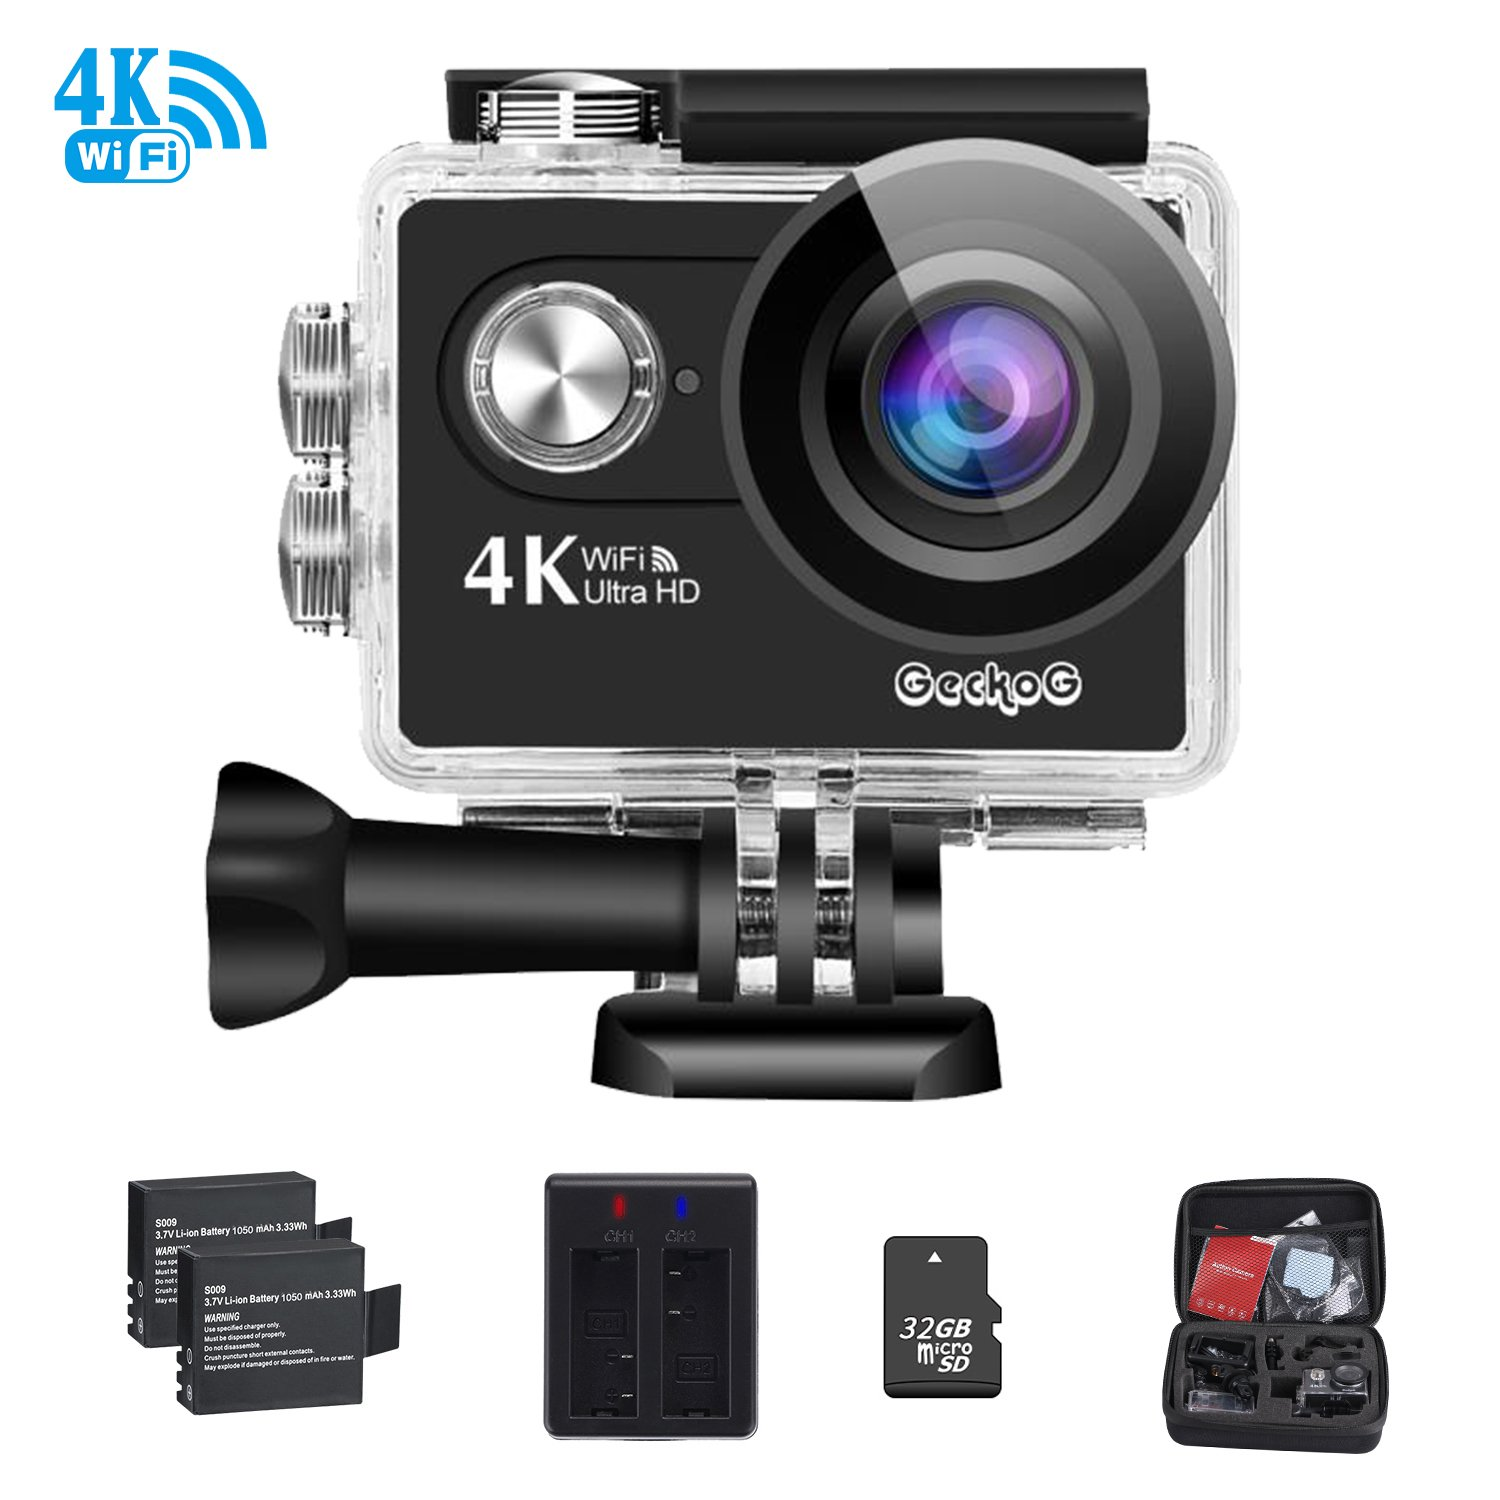 4K WIFI Sports Action Camera Ultra HD Waterproof DV Camcorder 16MP Underwater Camera Helmet Camera 170°Wide Angle+2Pcs 1050Mah Rechargeable Batteries+USB Dual battery Charger+ with 32GB Class 10 Memor